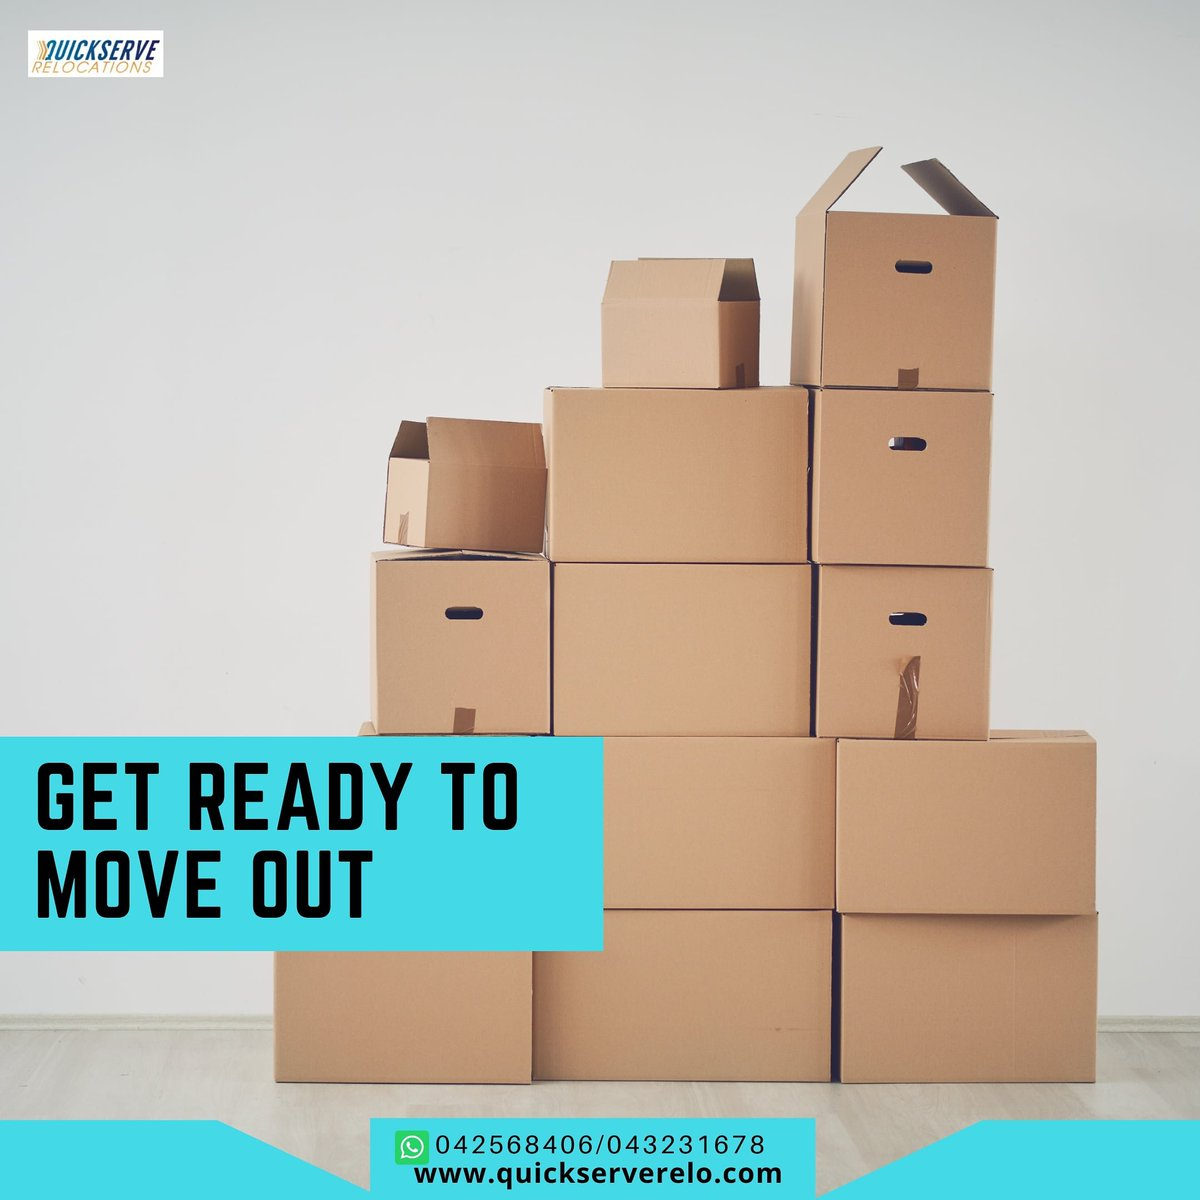 #movers #storage #moving  #instagramtags #webstagram #like4me #like4like #like4tags #likeforme #like4follow #likeforlike #like4follower #SaturdayMotivation #like4followers #likeforliketeam #likeforfollowers #SaturdayMorning #Dubaipic.twitter.com/6BOlK9b2QX